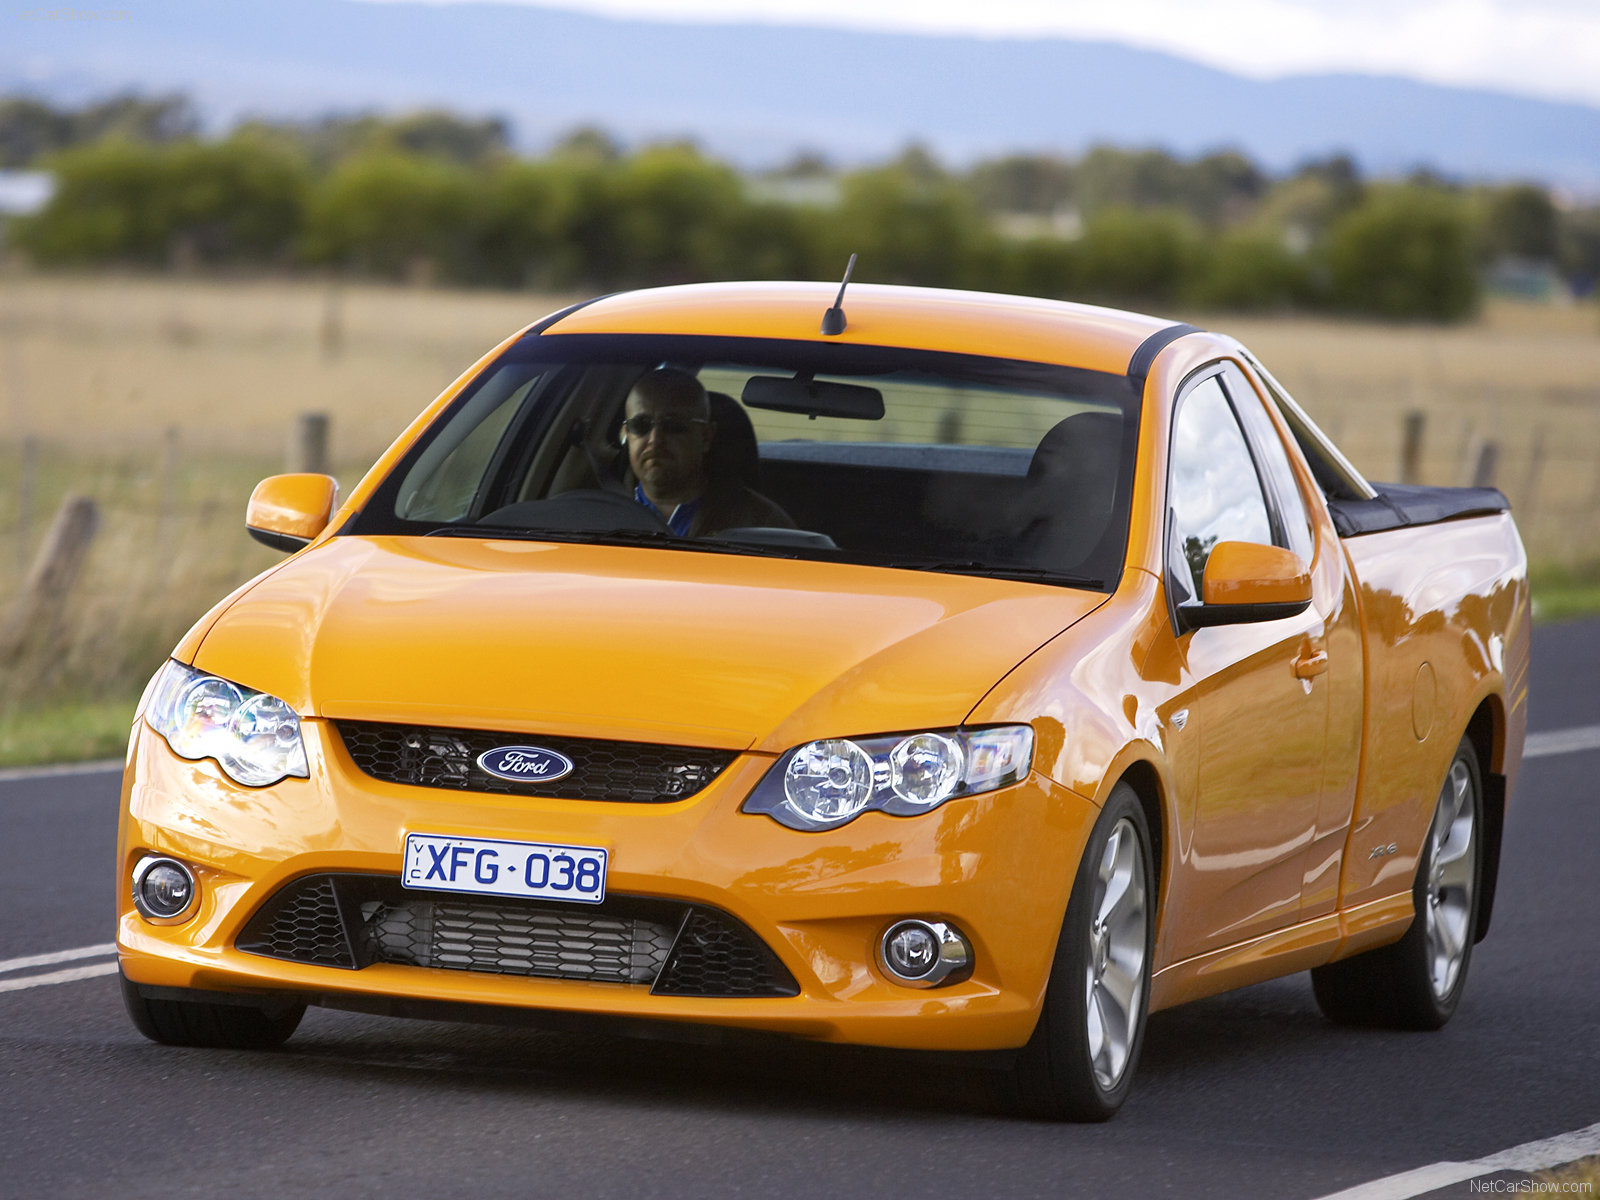 Hd Wallpapers Ford Falcon Xr6 Wallpaper Fg Ute Wiring Diagram Get Free High Quality